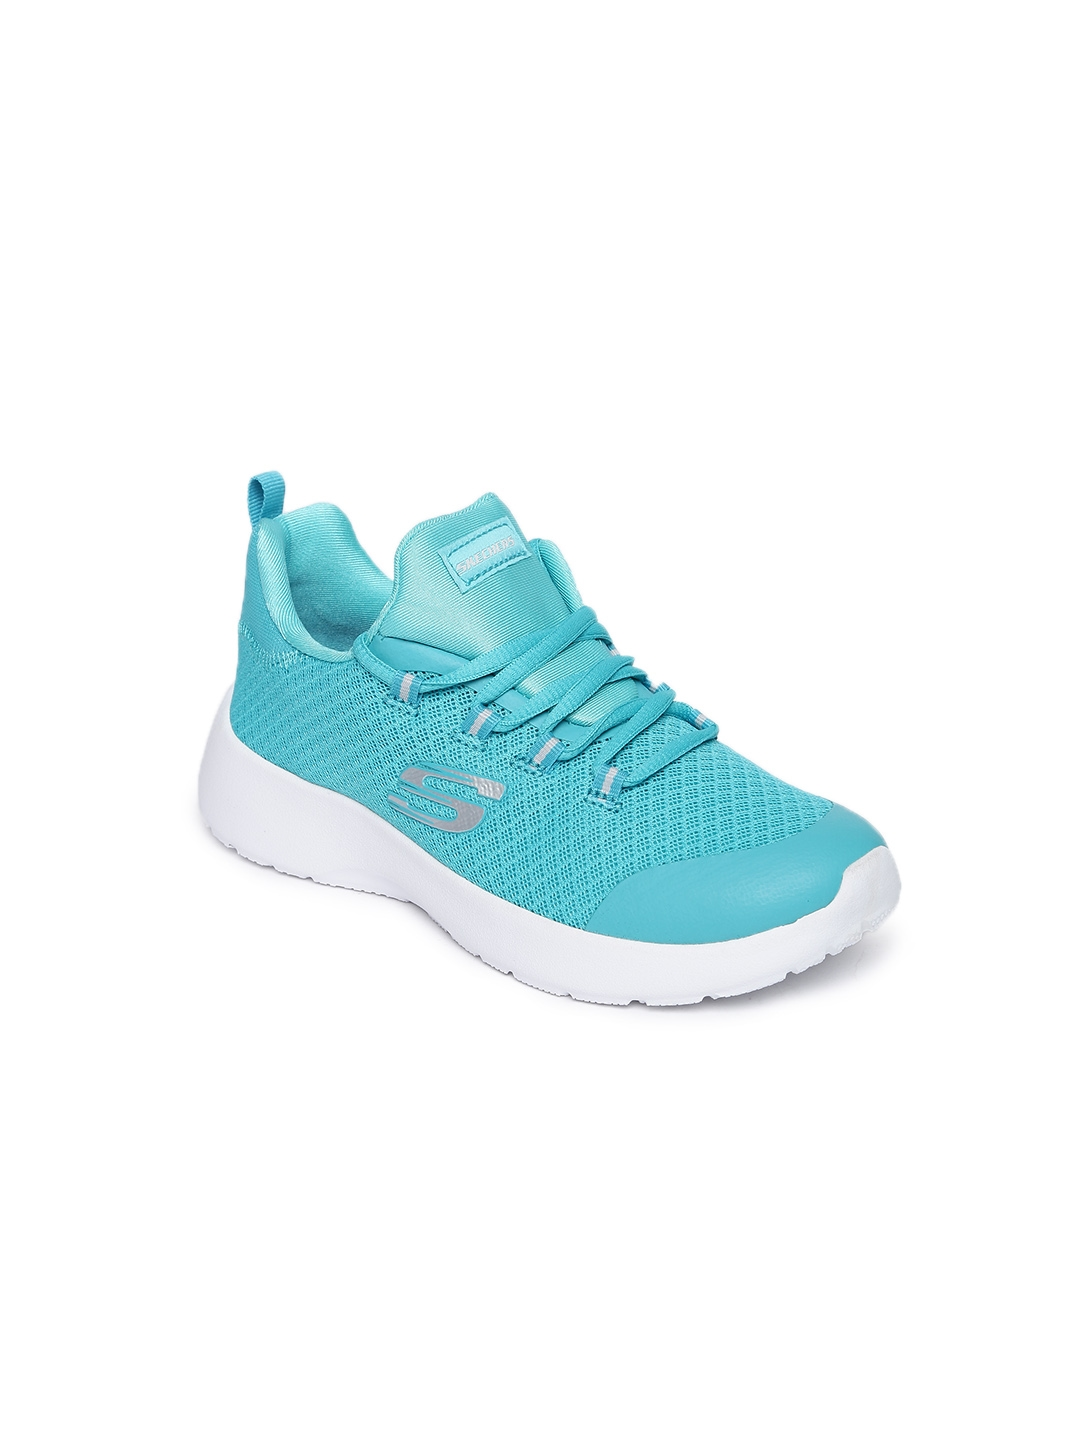 0325a1450d5 Buy Skechers Girls Teal DYNAMIGHT Training Shoes - Sports Shoes for ...